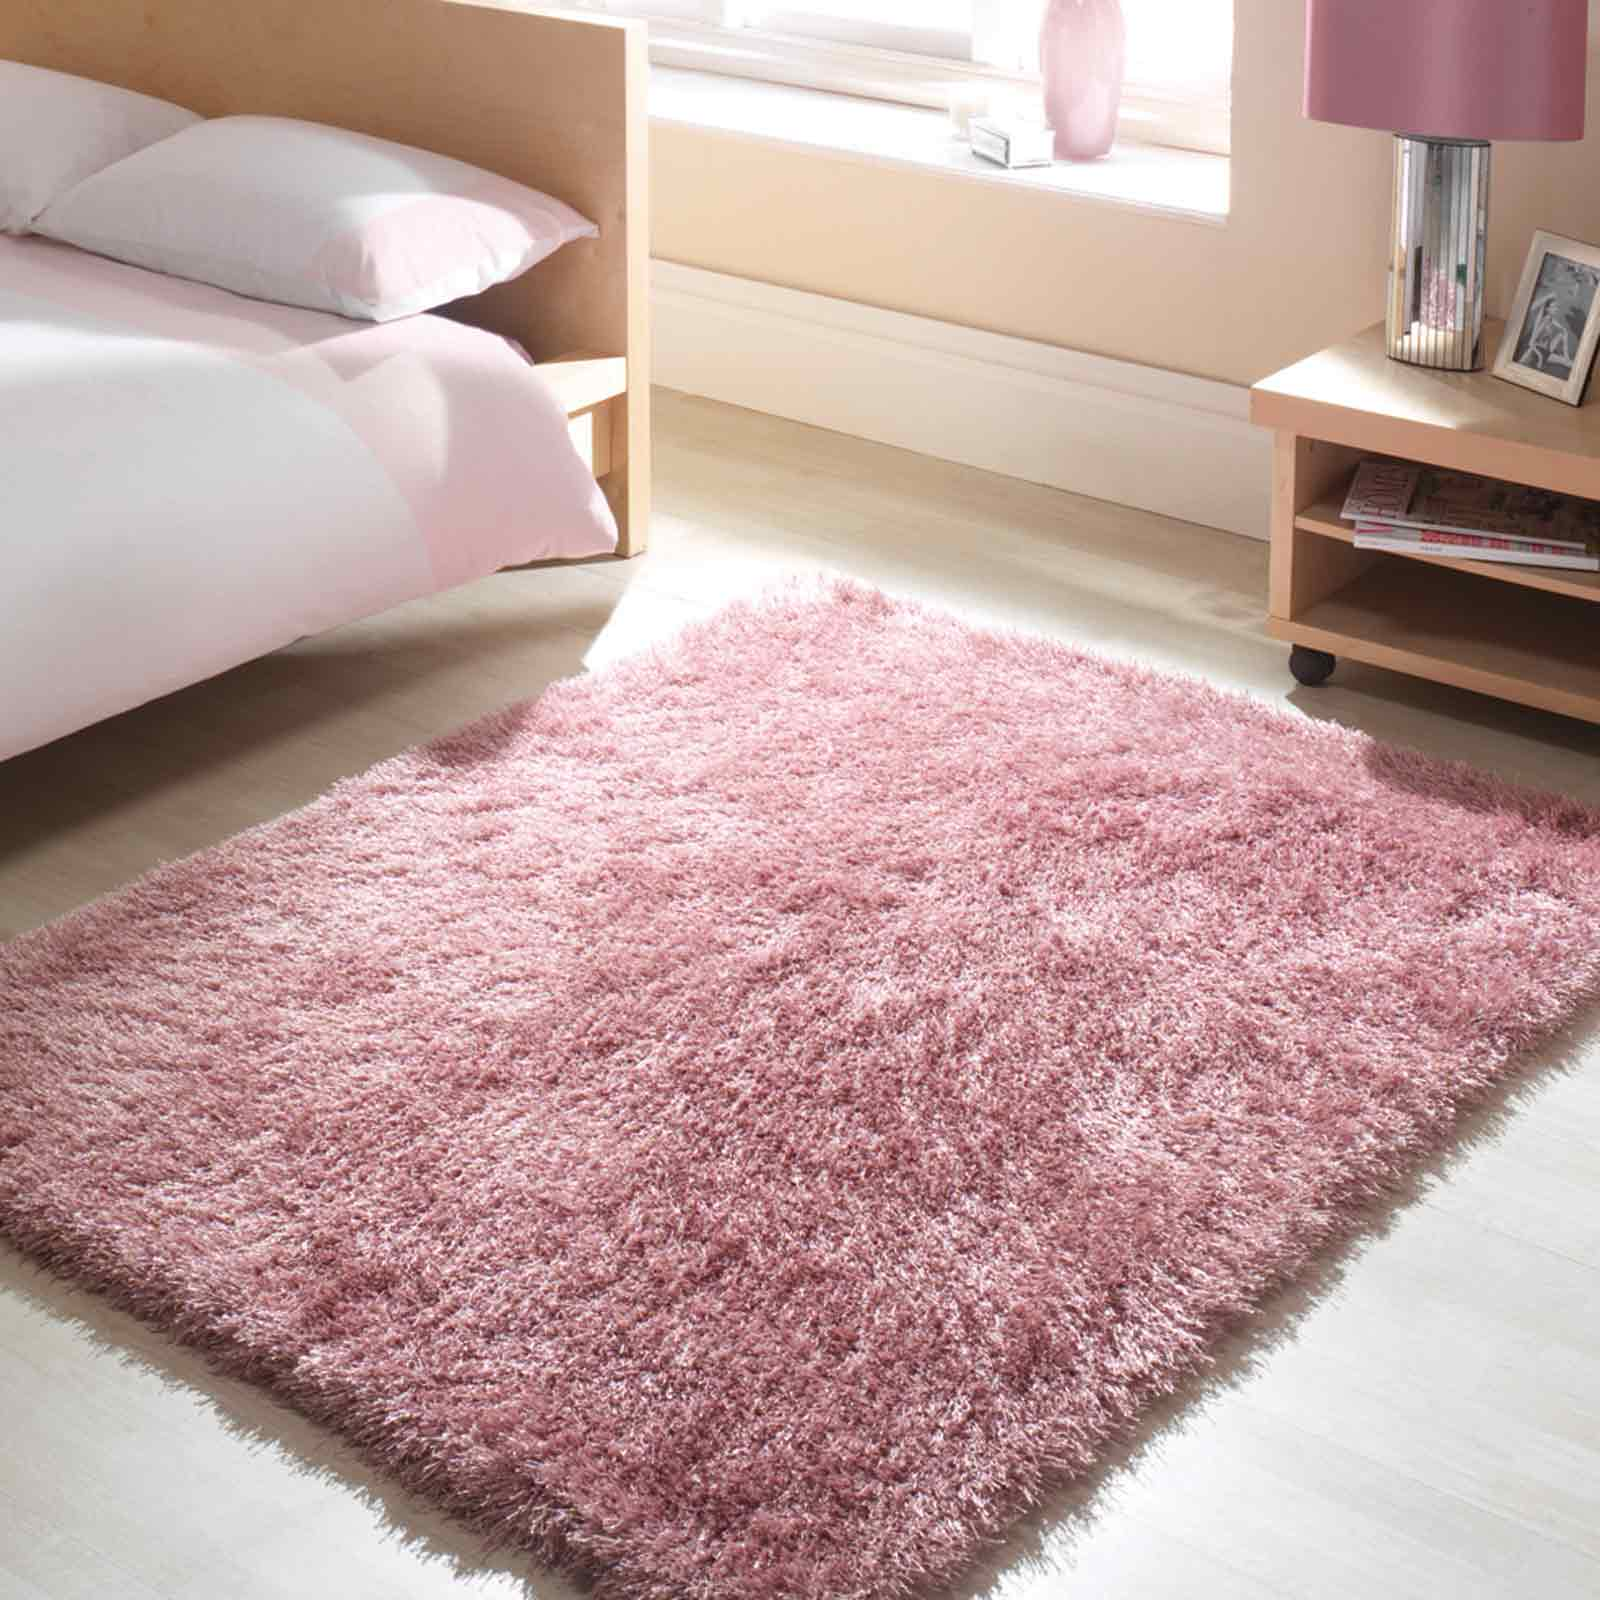 High Quality Santa Cruz Summertime Shaggy Rugs In Crushed Strawberry Pink